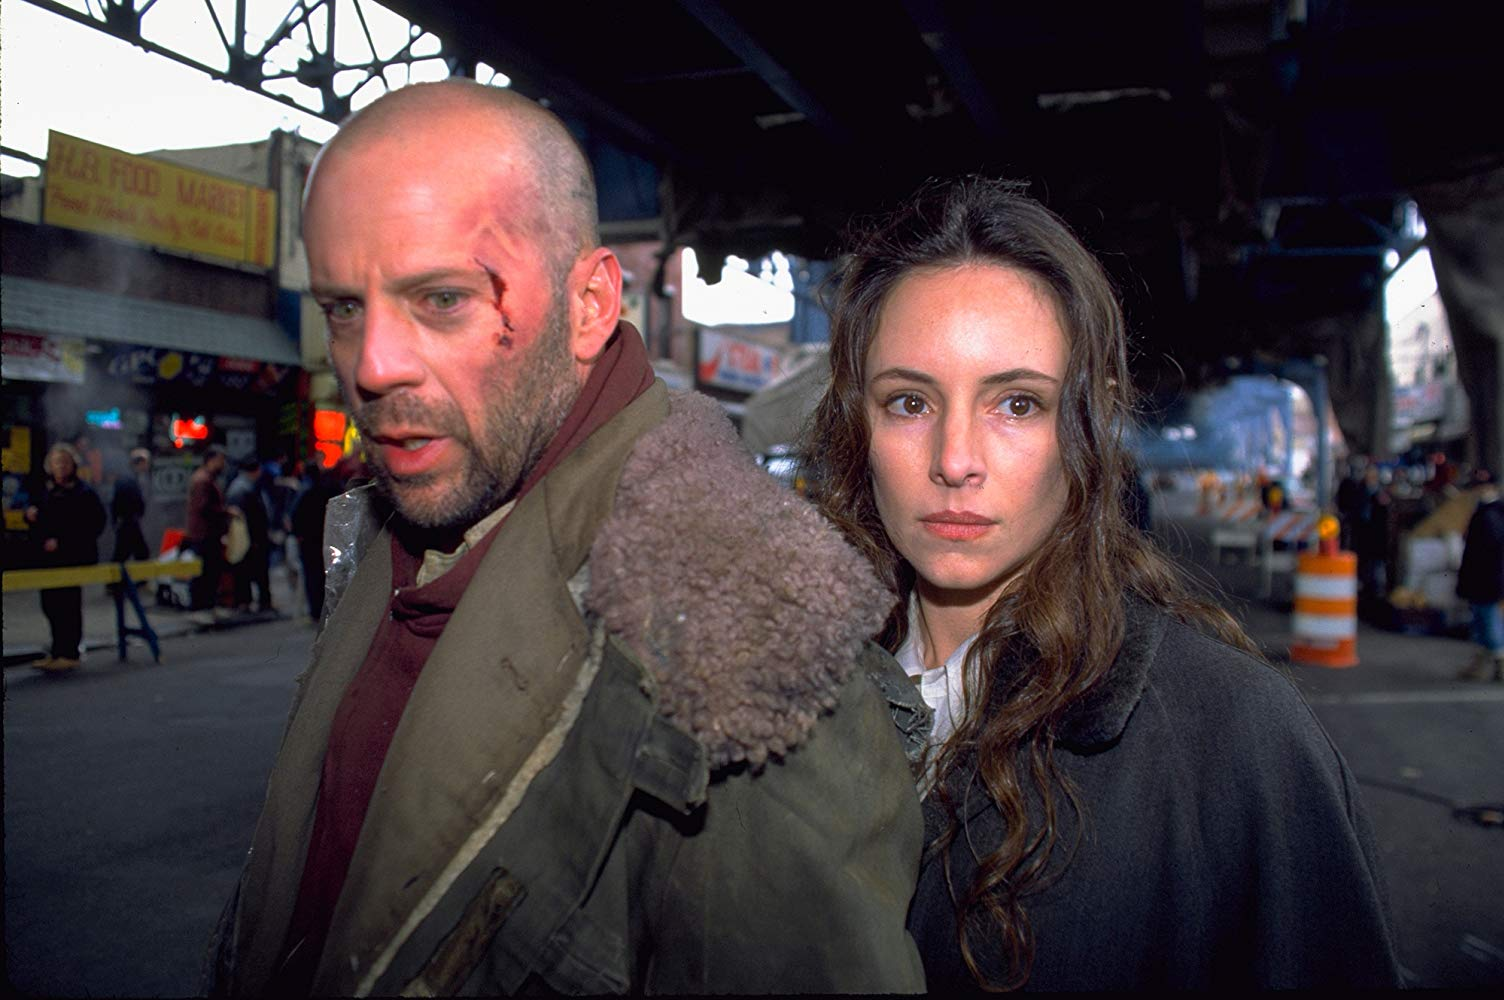 Time traveller James Cole (Bruce Willis) and psychiatrist Kathryn Railly (Madeleine Stowe) in Twelve Monkeys (1995)